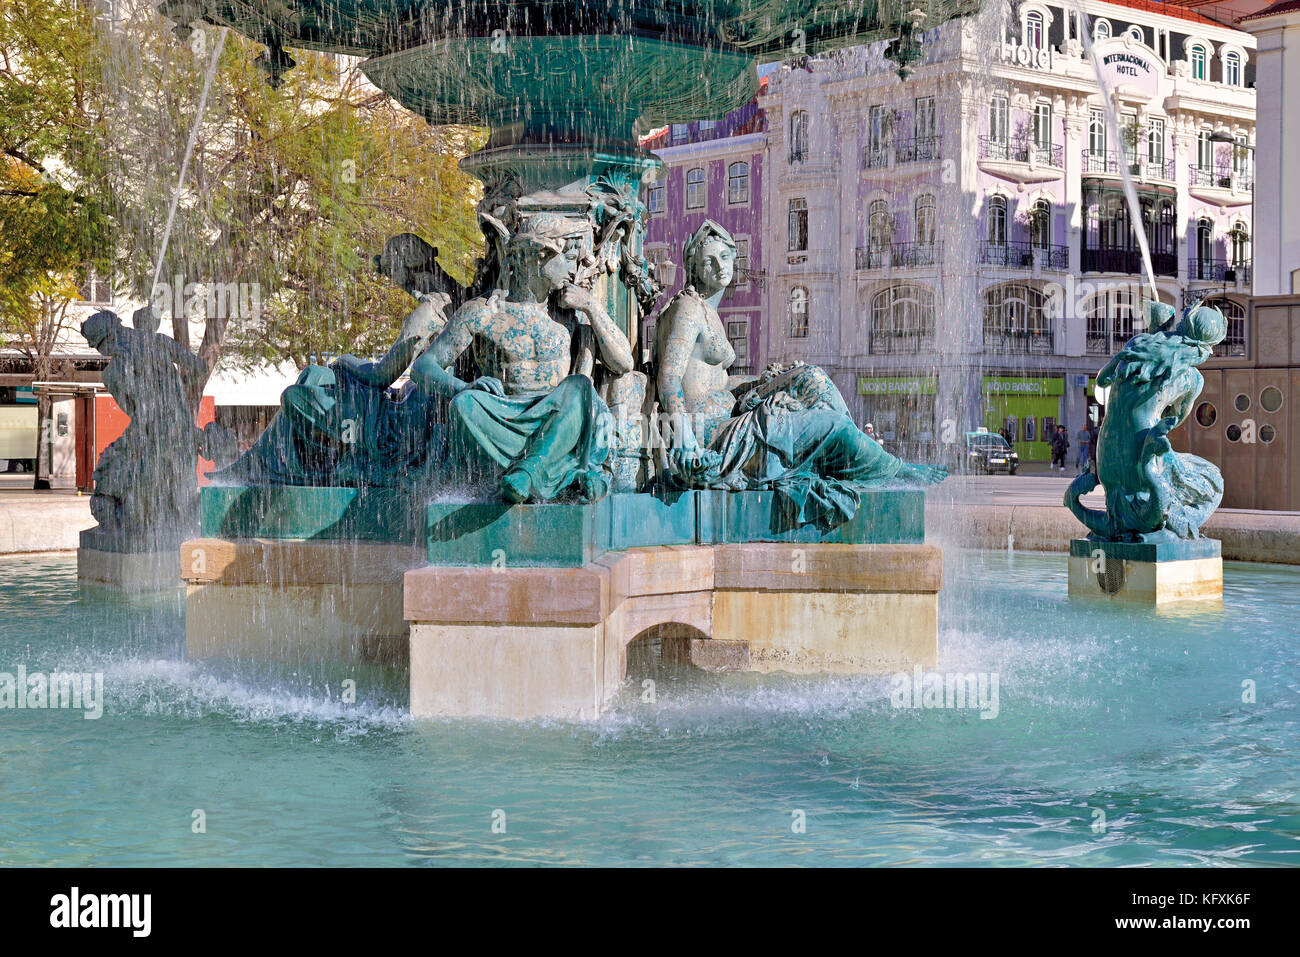 Bronze fountain with mytholoical figures in downtown Lisbon - Stock Image